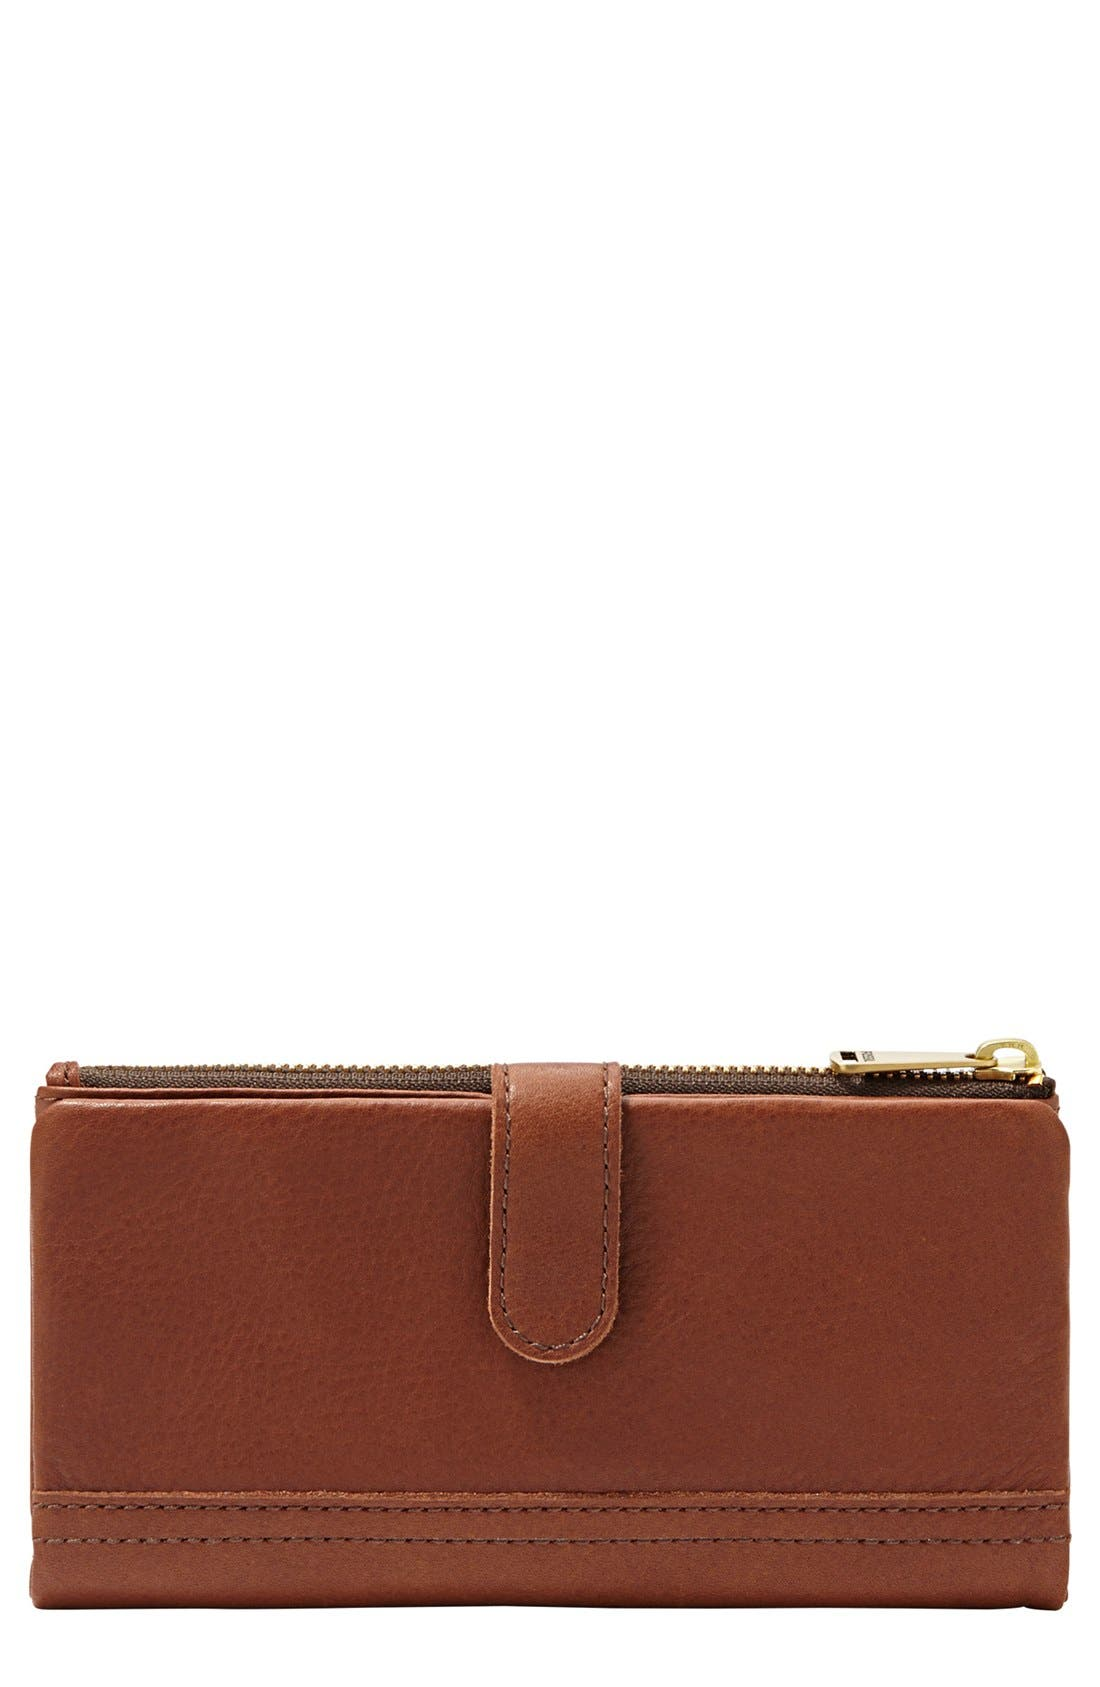 Alternate Image 1 Selected - Fossil 'Erin' Tab Clutch